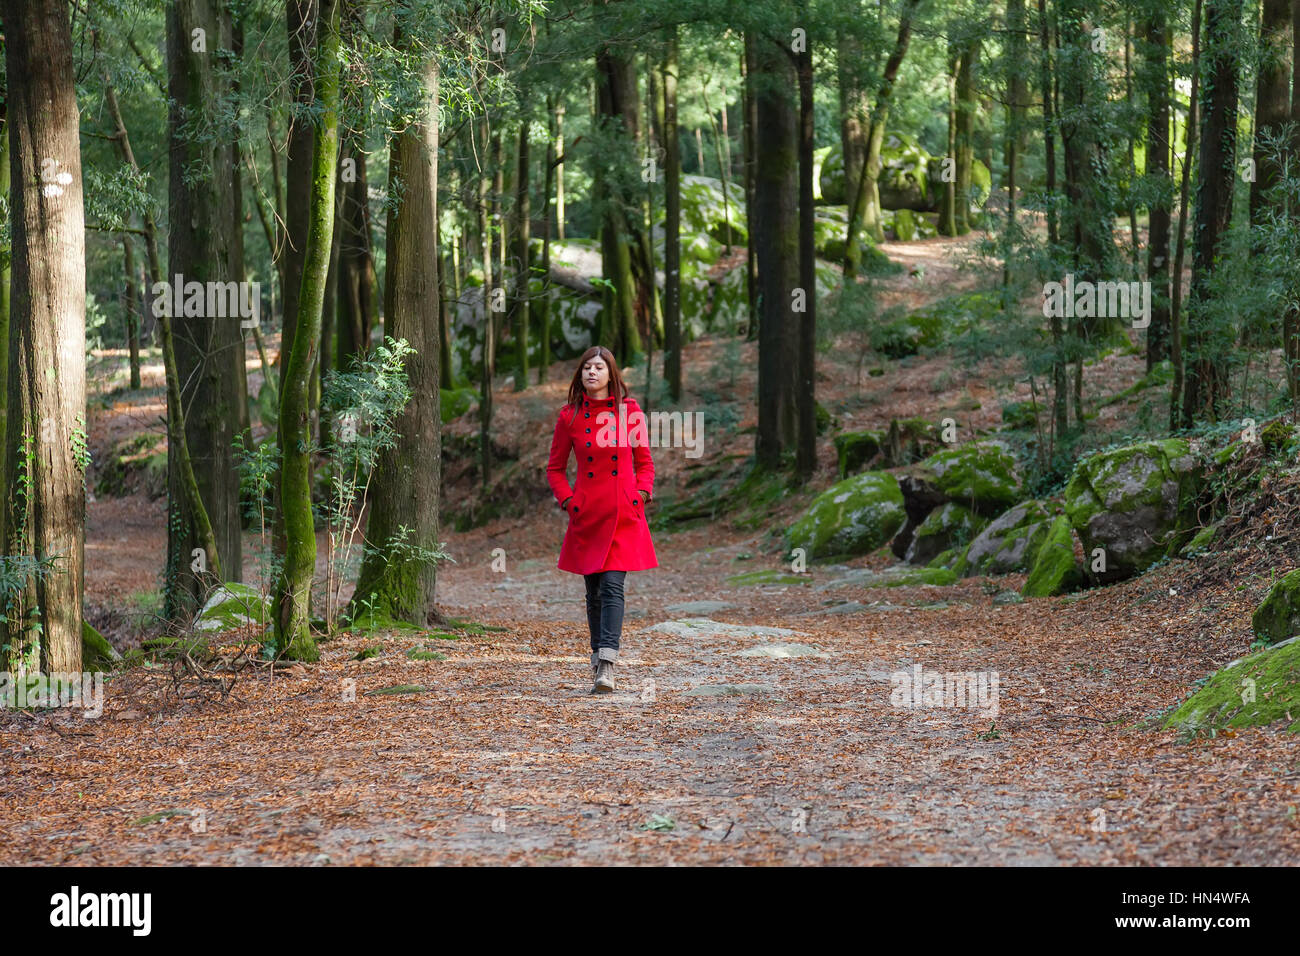 Young woman walking alone on a forest dirt path wearing a red overcoat on a cold winter day/ woman walking alone - Stock Image